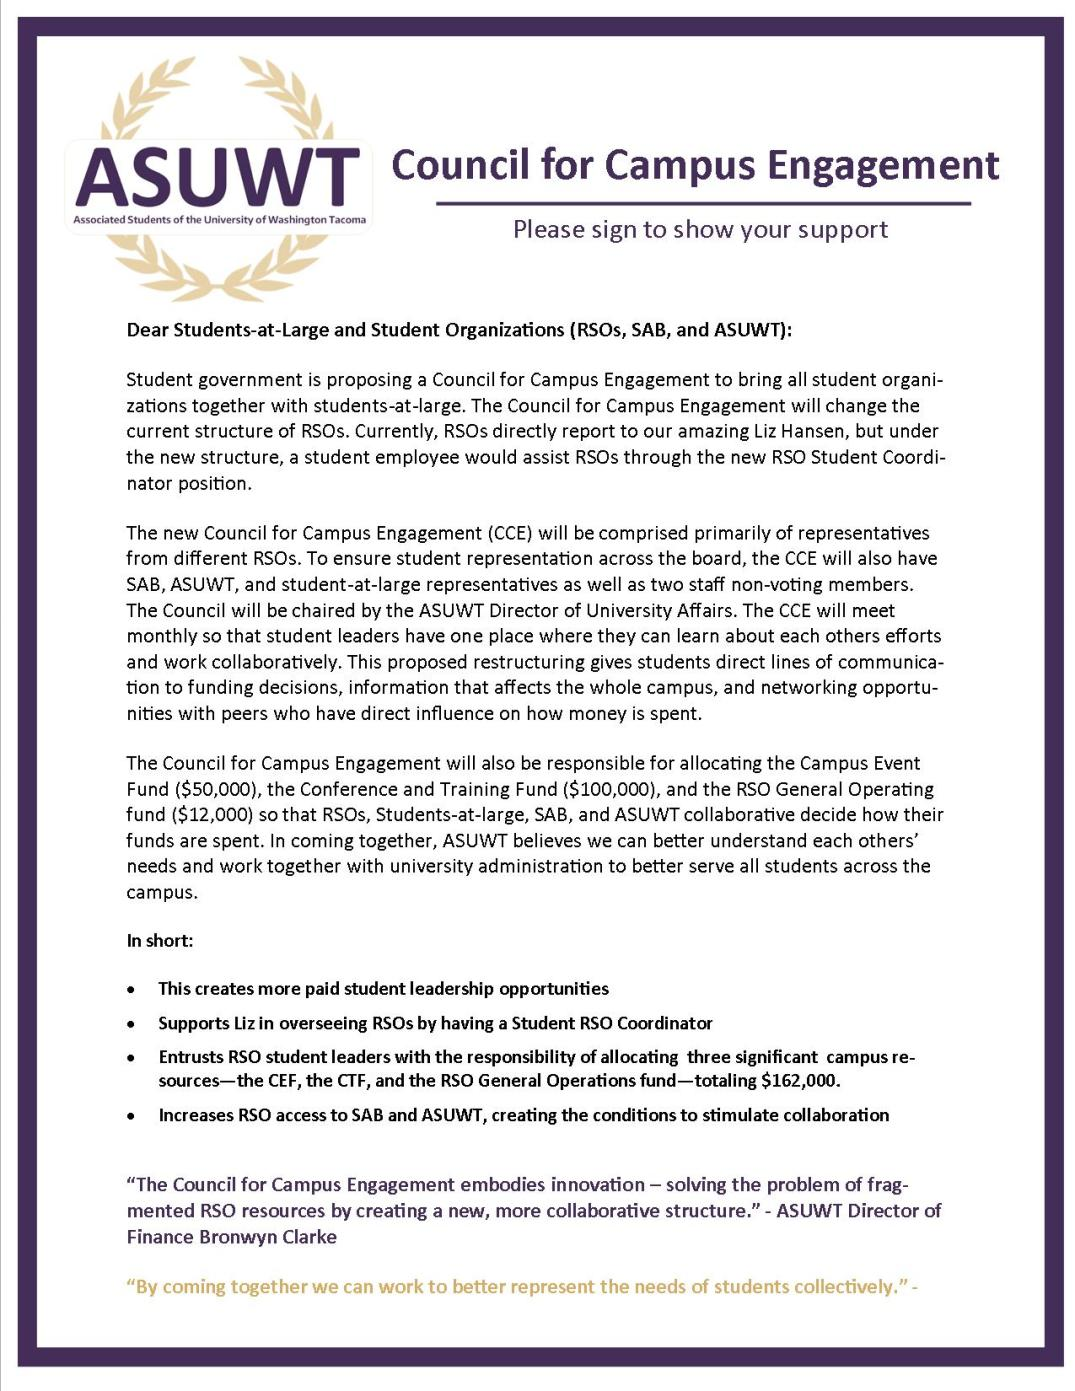 Council for Campus Engagement Petition Template (1)